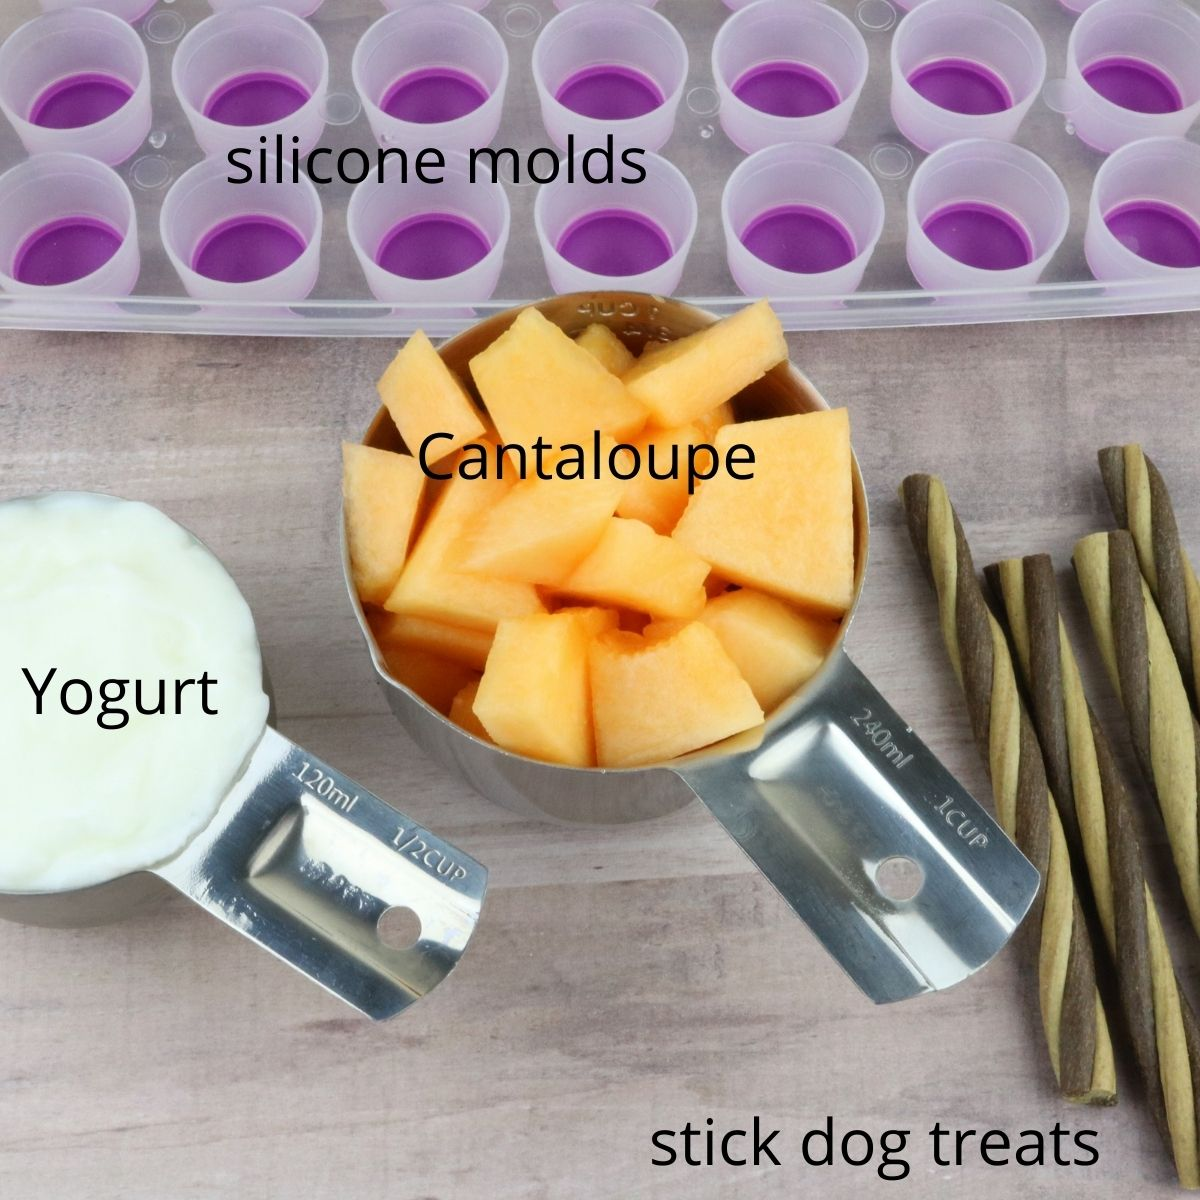 Cantlope and Yogurt Pupsicles